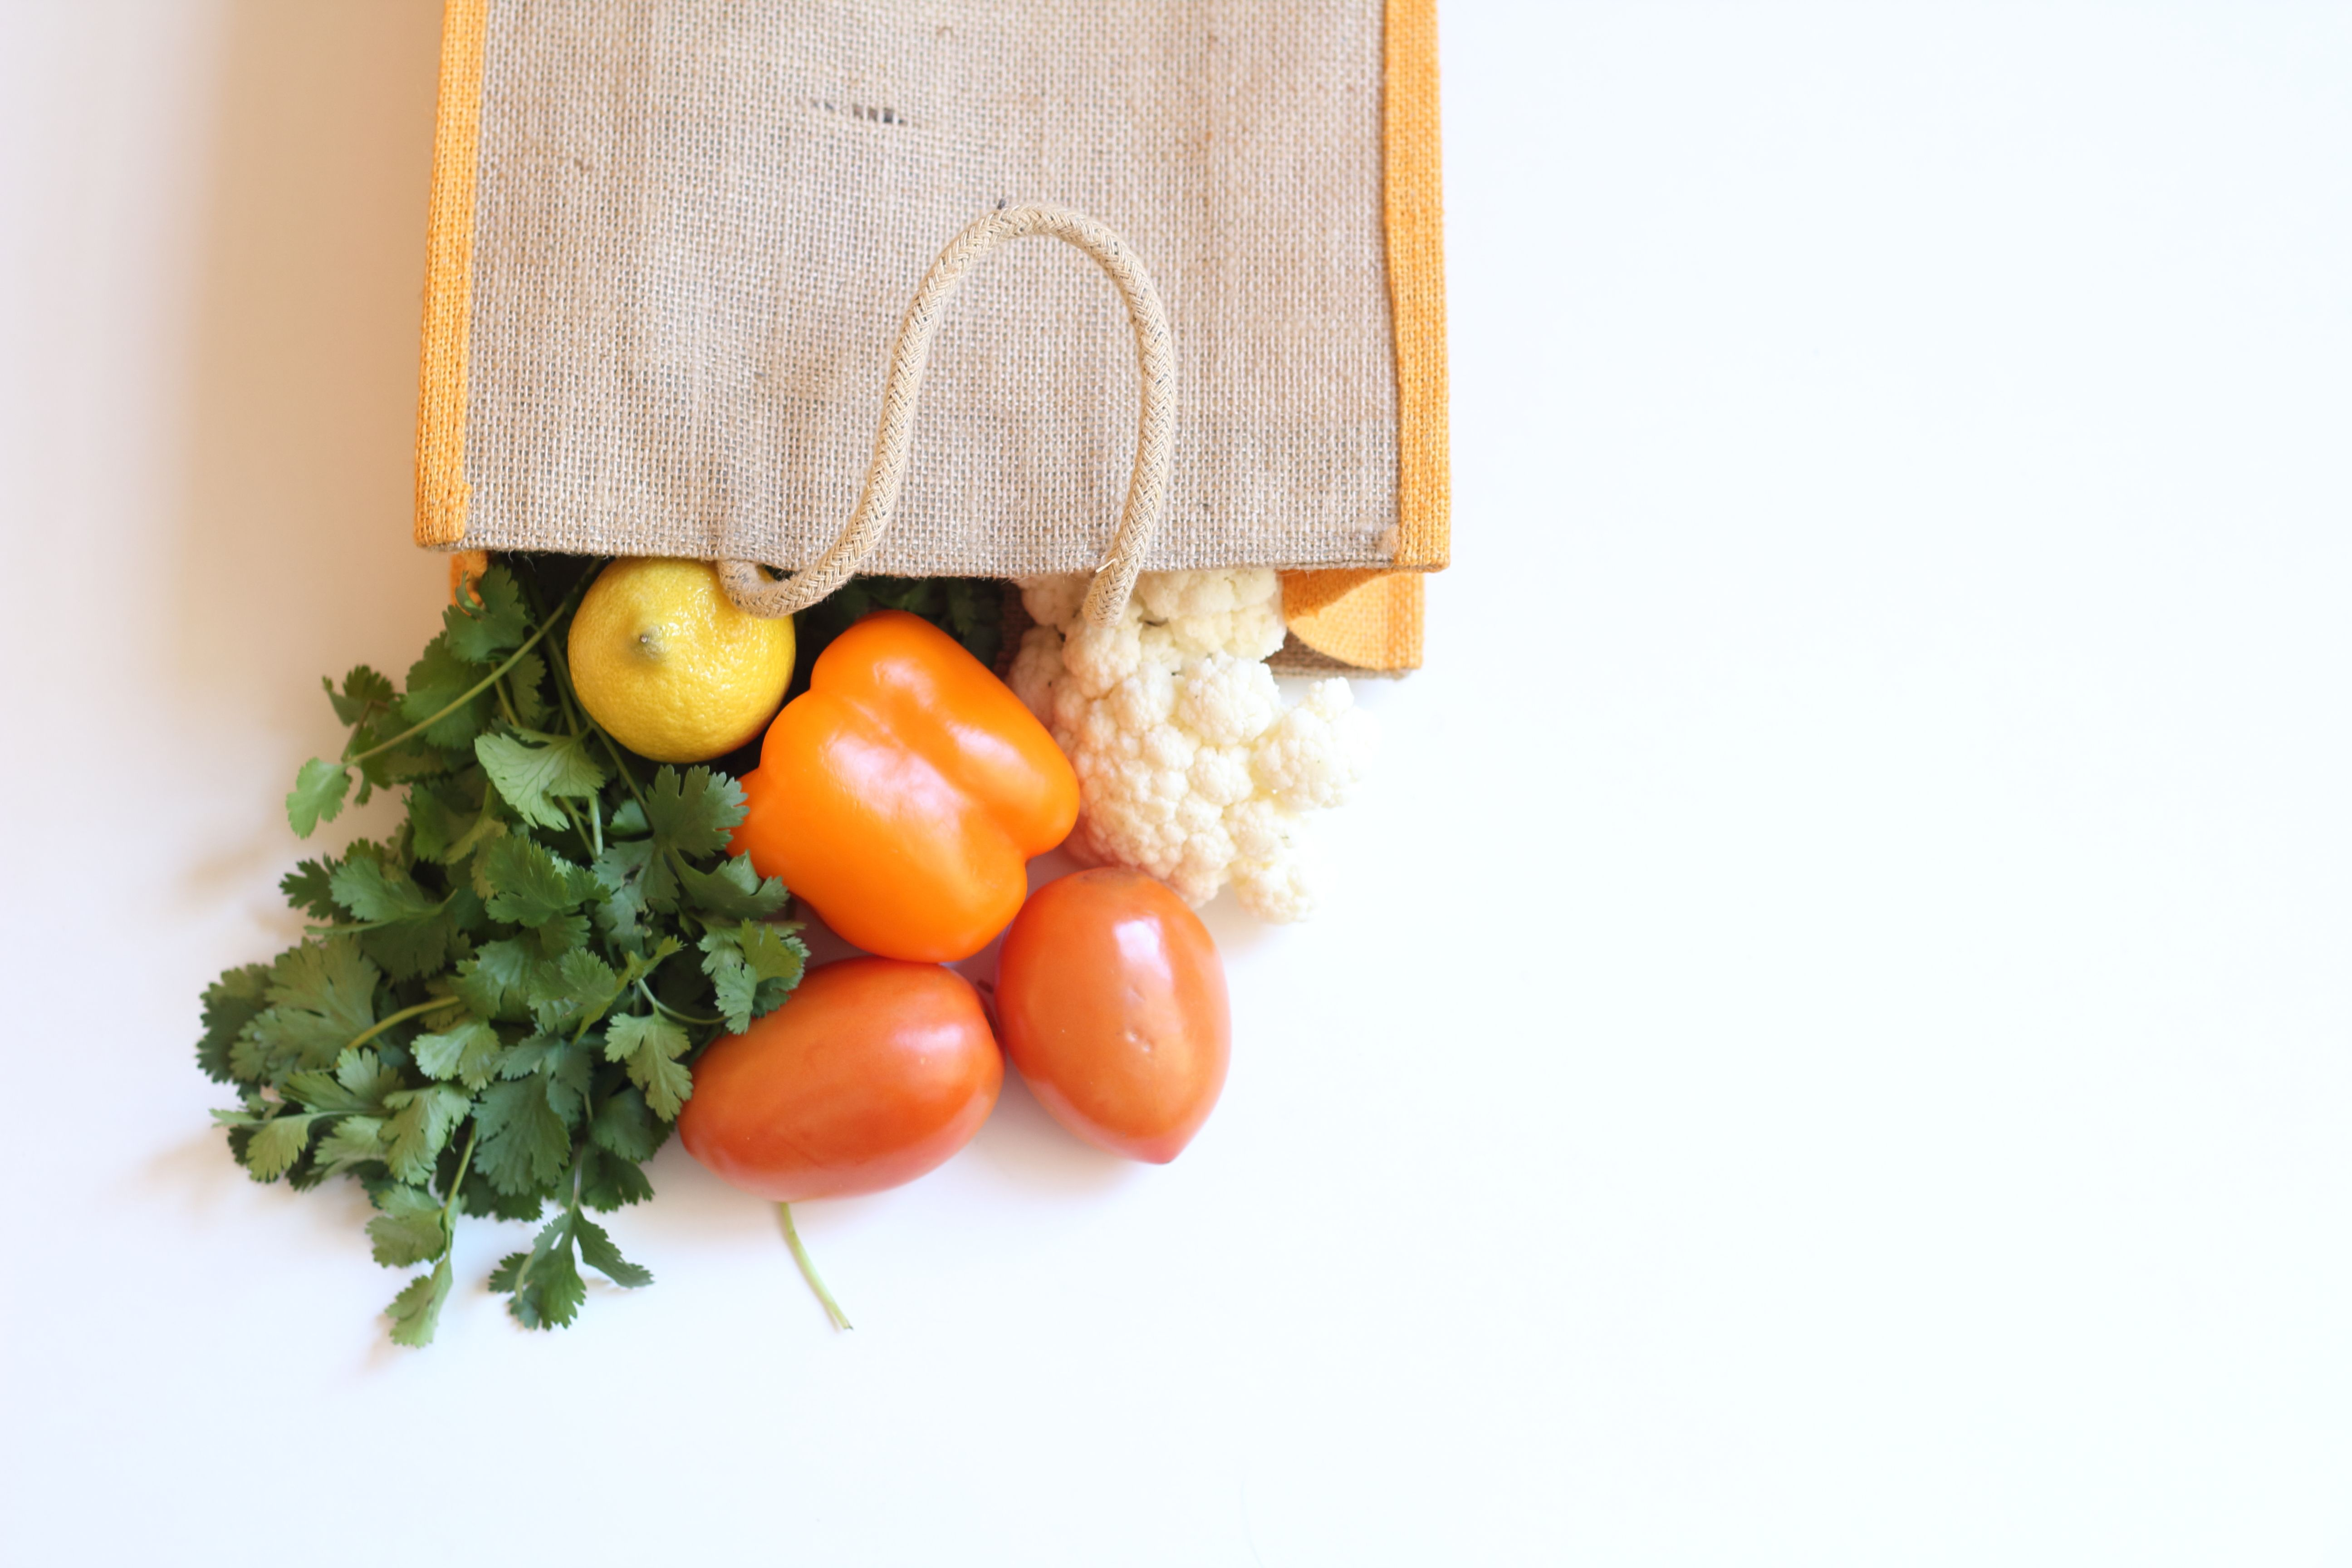 Let produce roam free in a larger bag.